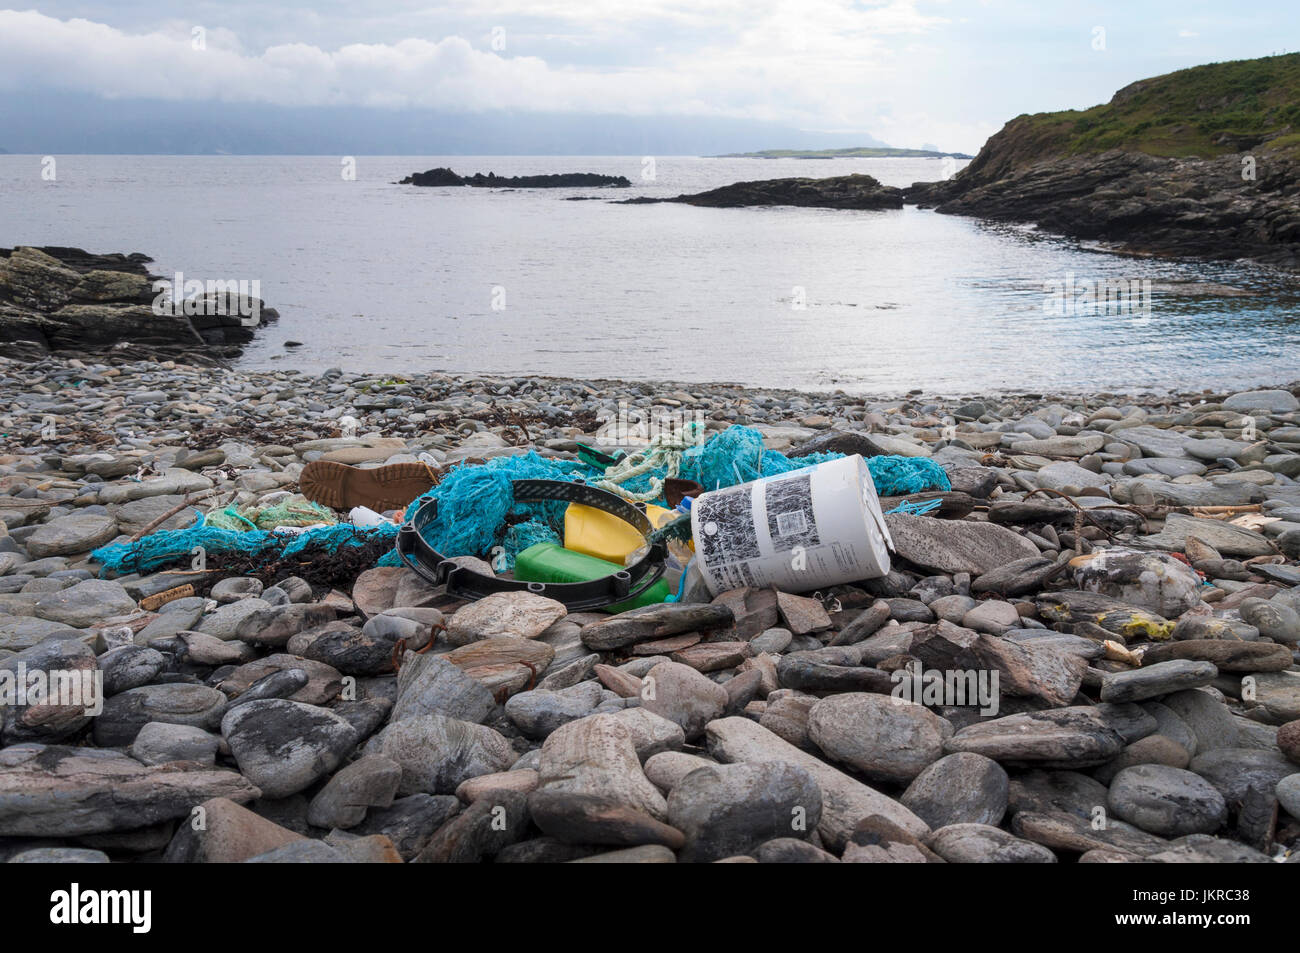 A tangled mass of plastic waste and fishing nets washed up on the shore near Rosbeg, County Donegal, Ireland - Stock Image